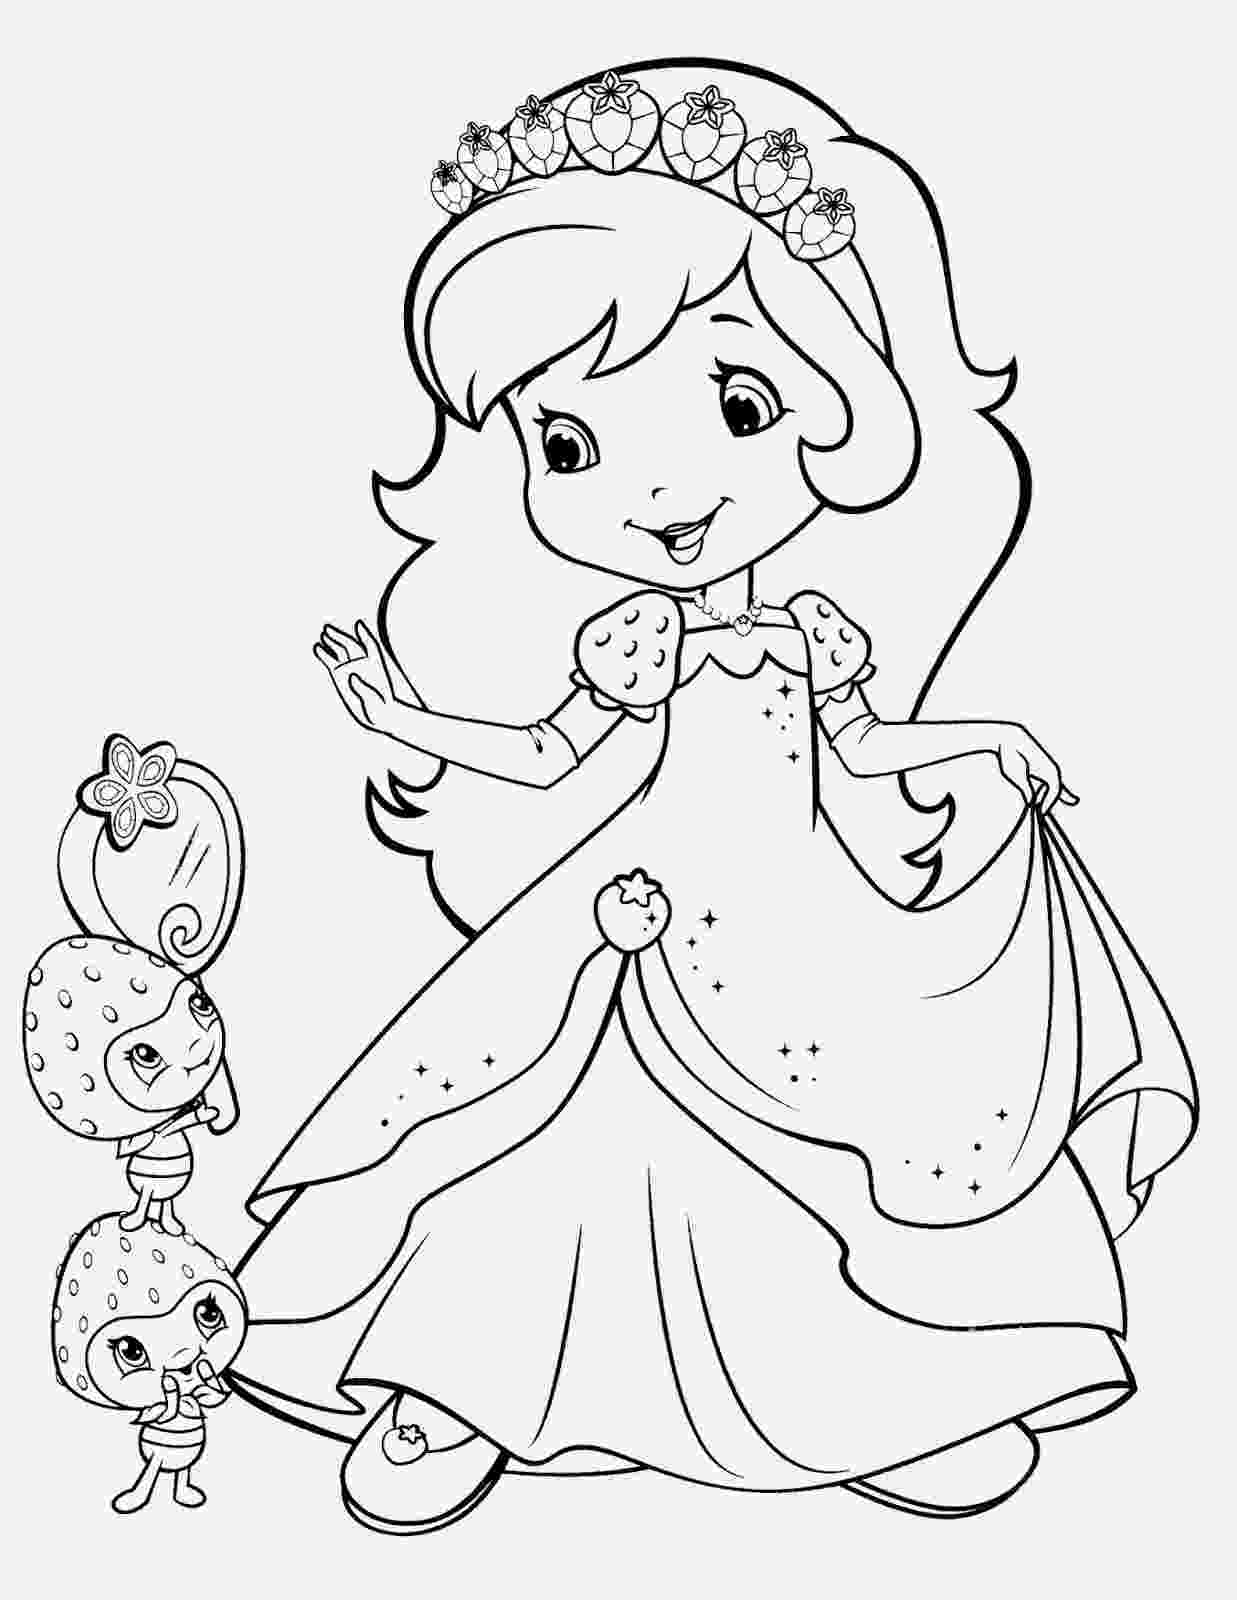 strawberry shortcake coloring pages free princess strawberry shortcake coloring pages free strawberry coloring pages shortcake